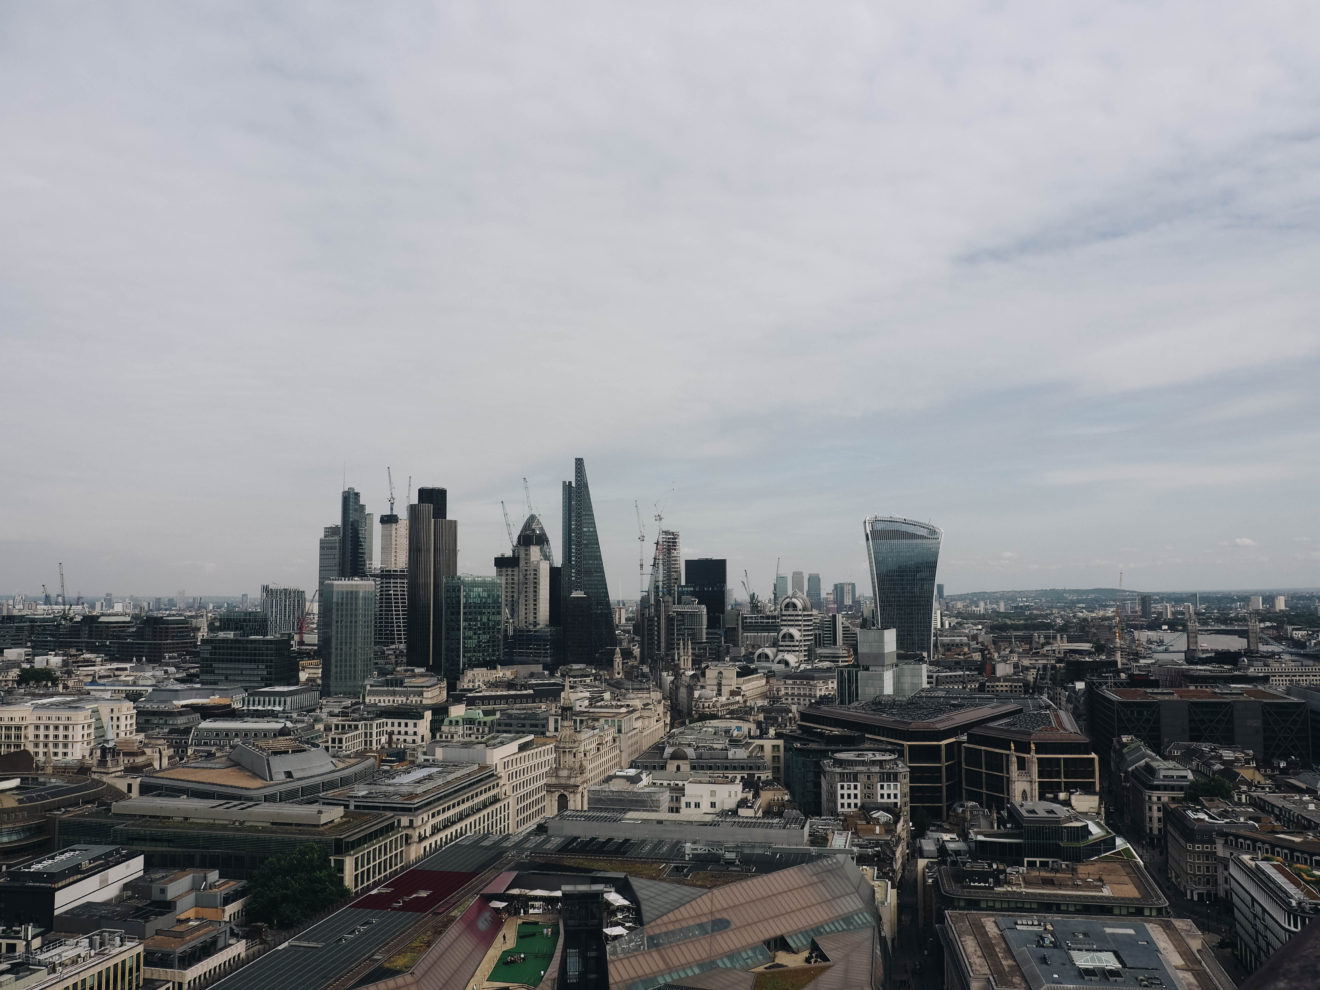 Vue du Financial District de Londres